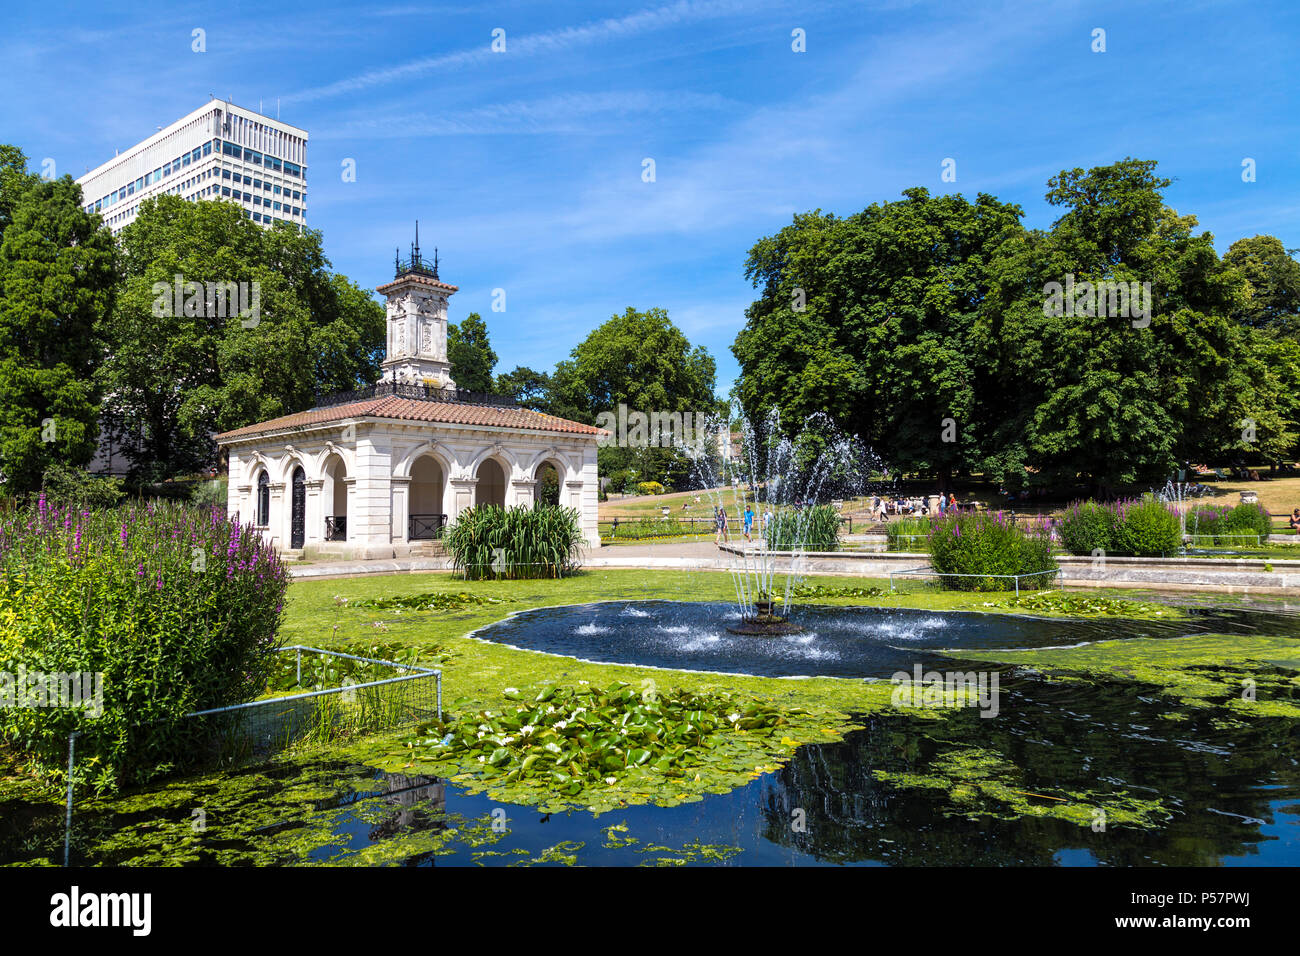 Italian Water Gardens and the former pump house designed by Sir Charles Barry and Robert Richardson Banks in Hyde Park, London, UK - Stock Image